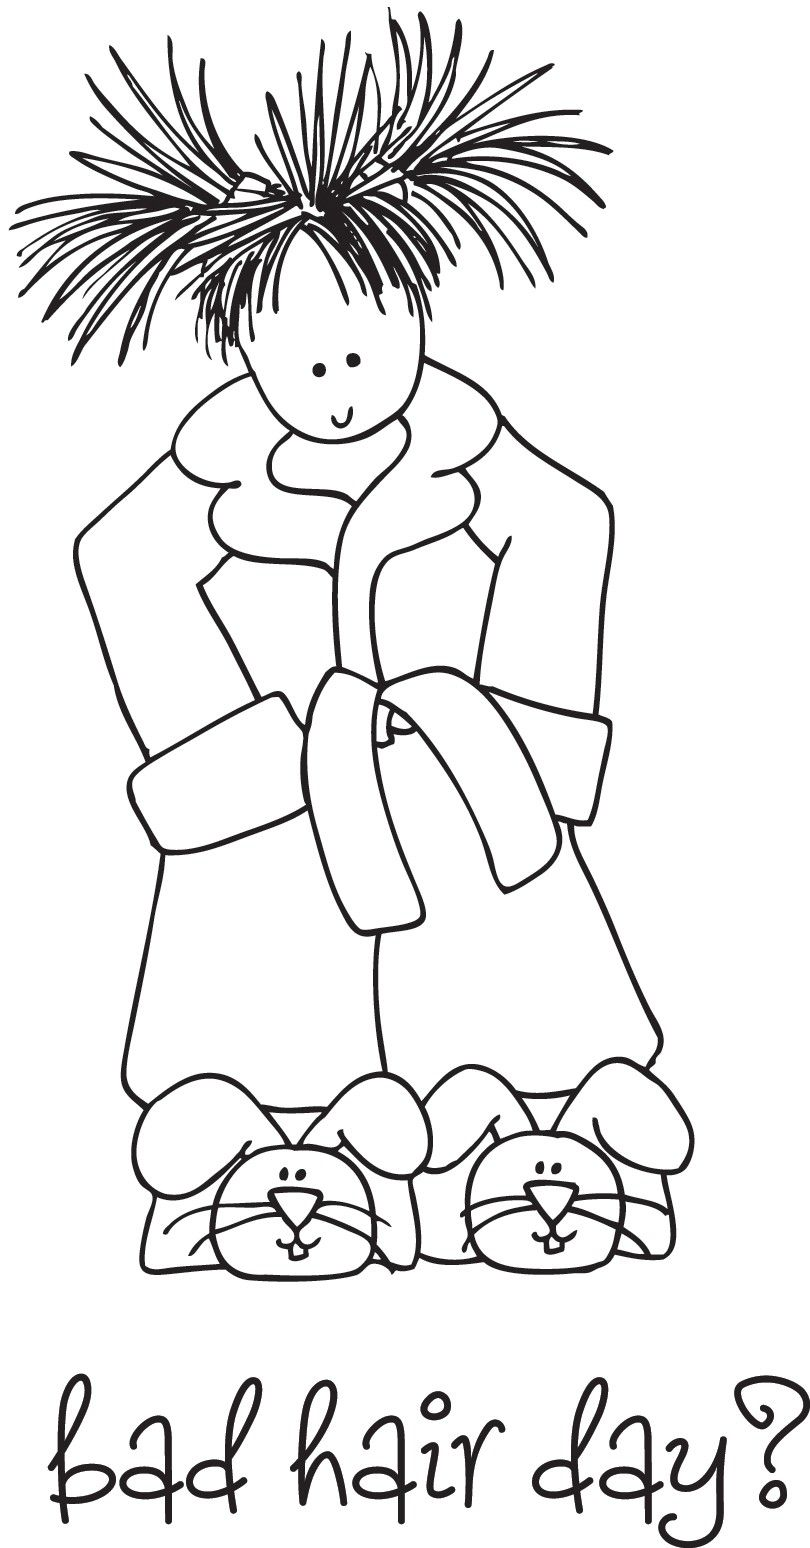 Stamping bella clipart and coloring page - Google Search